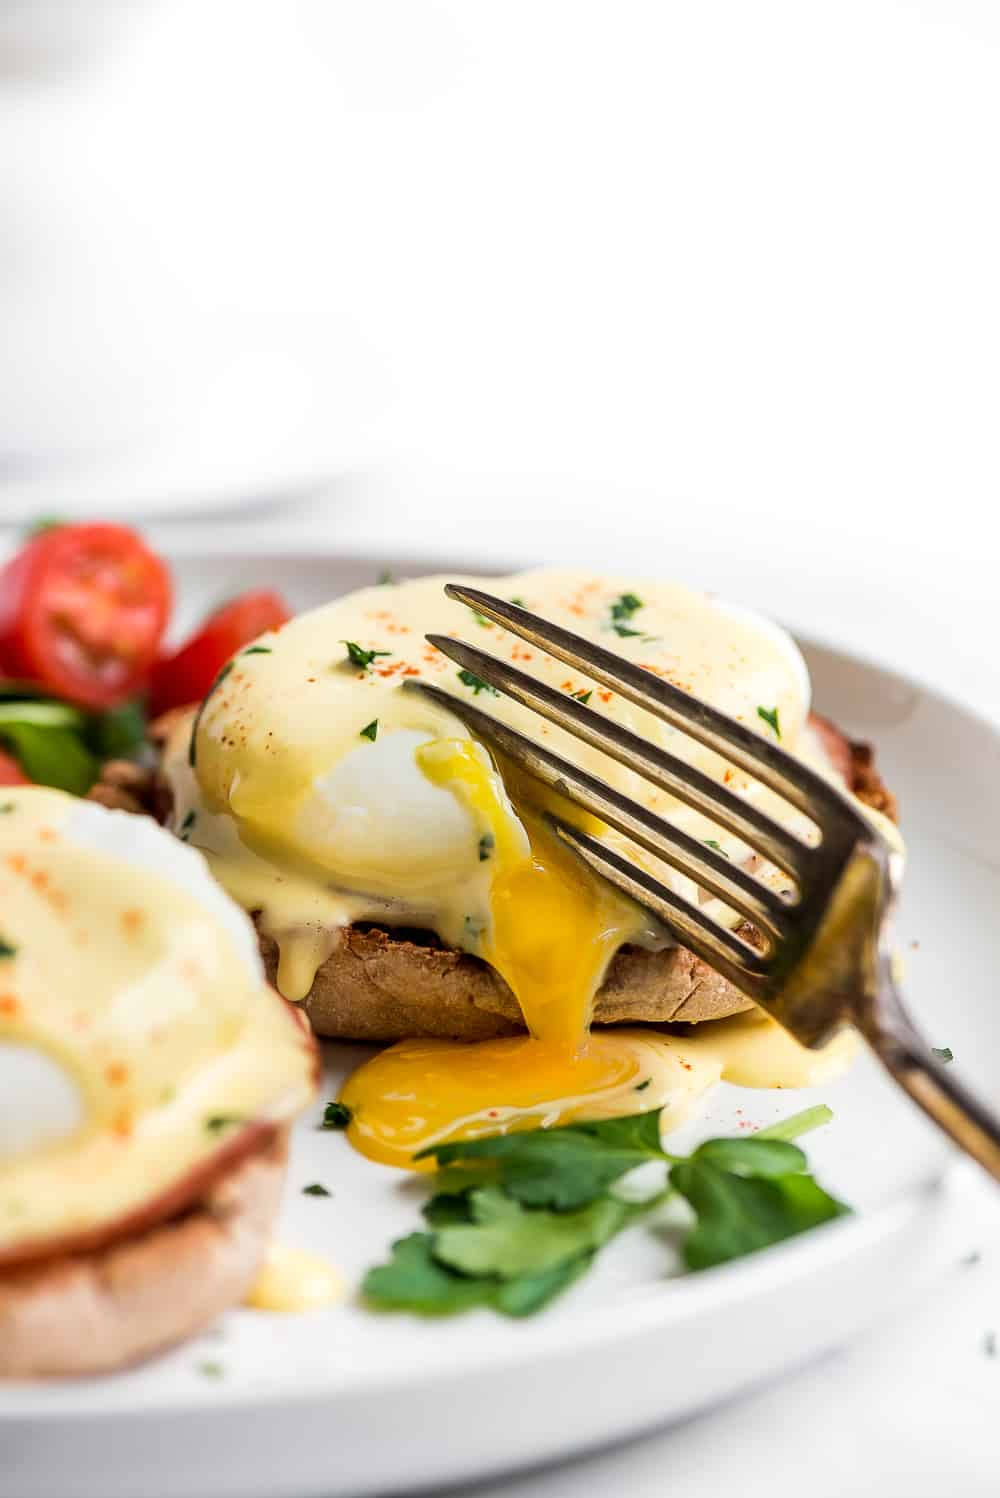 Egg Benedict on a plate being cut into with a fork.